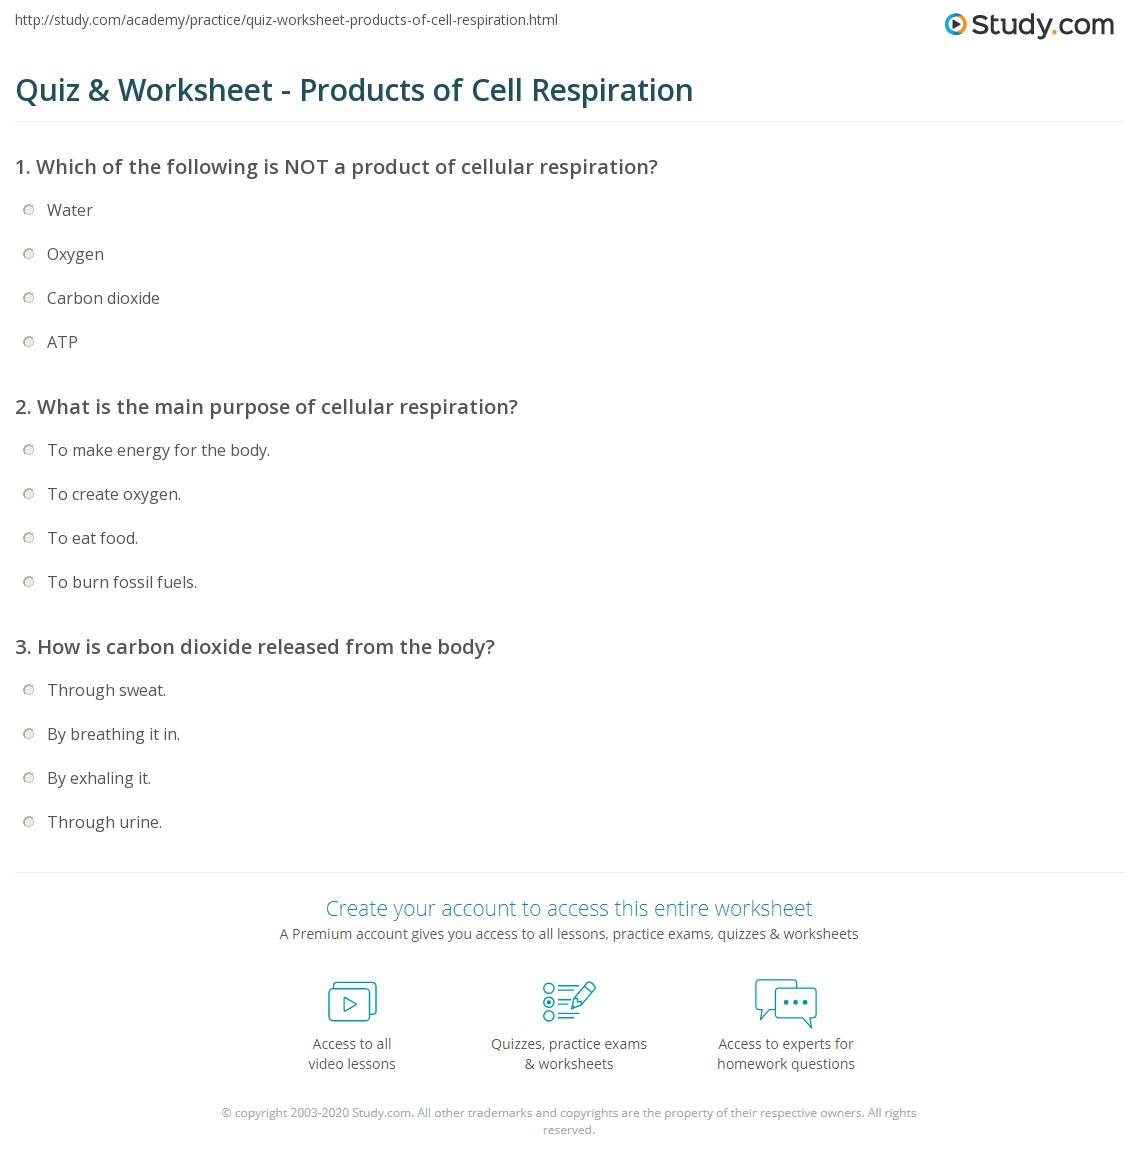 Worksheets Cell Respiration Worksheet quiz worksheet products of cell respiration study com print what are the worksheet